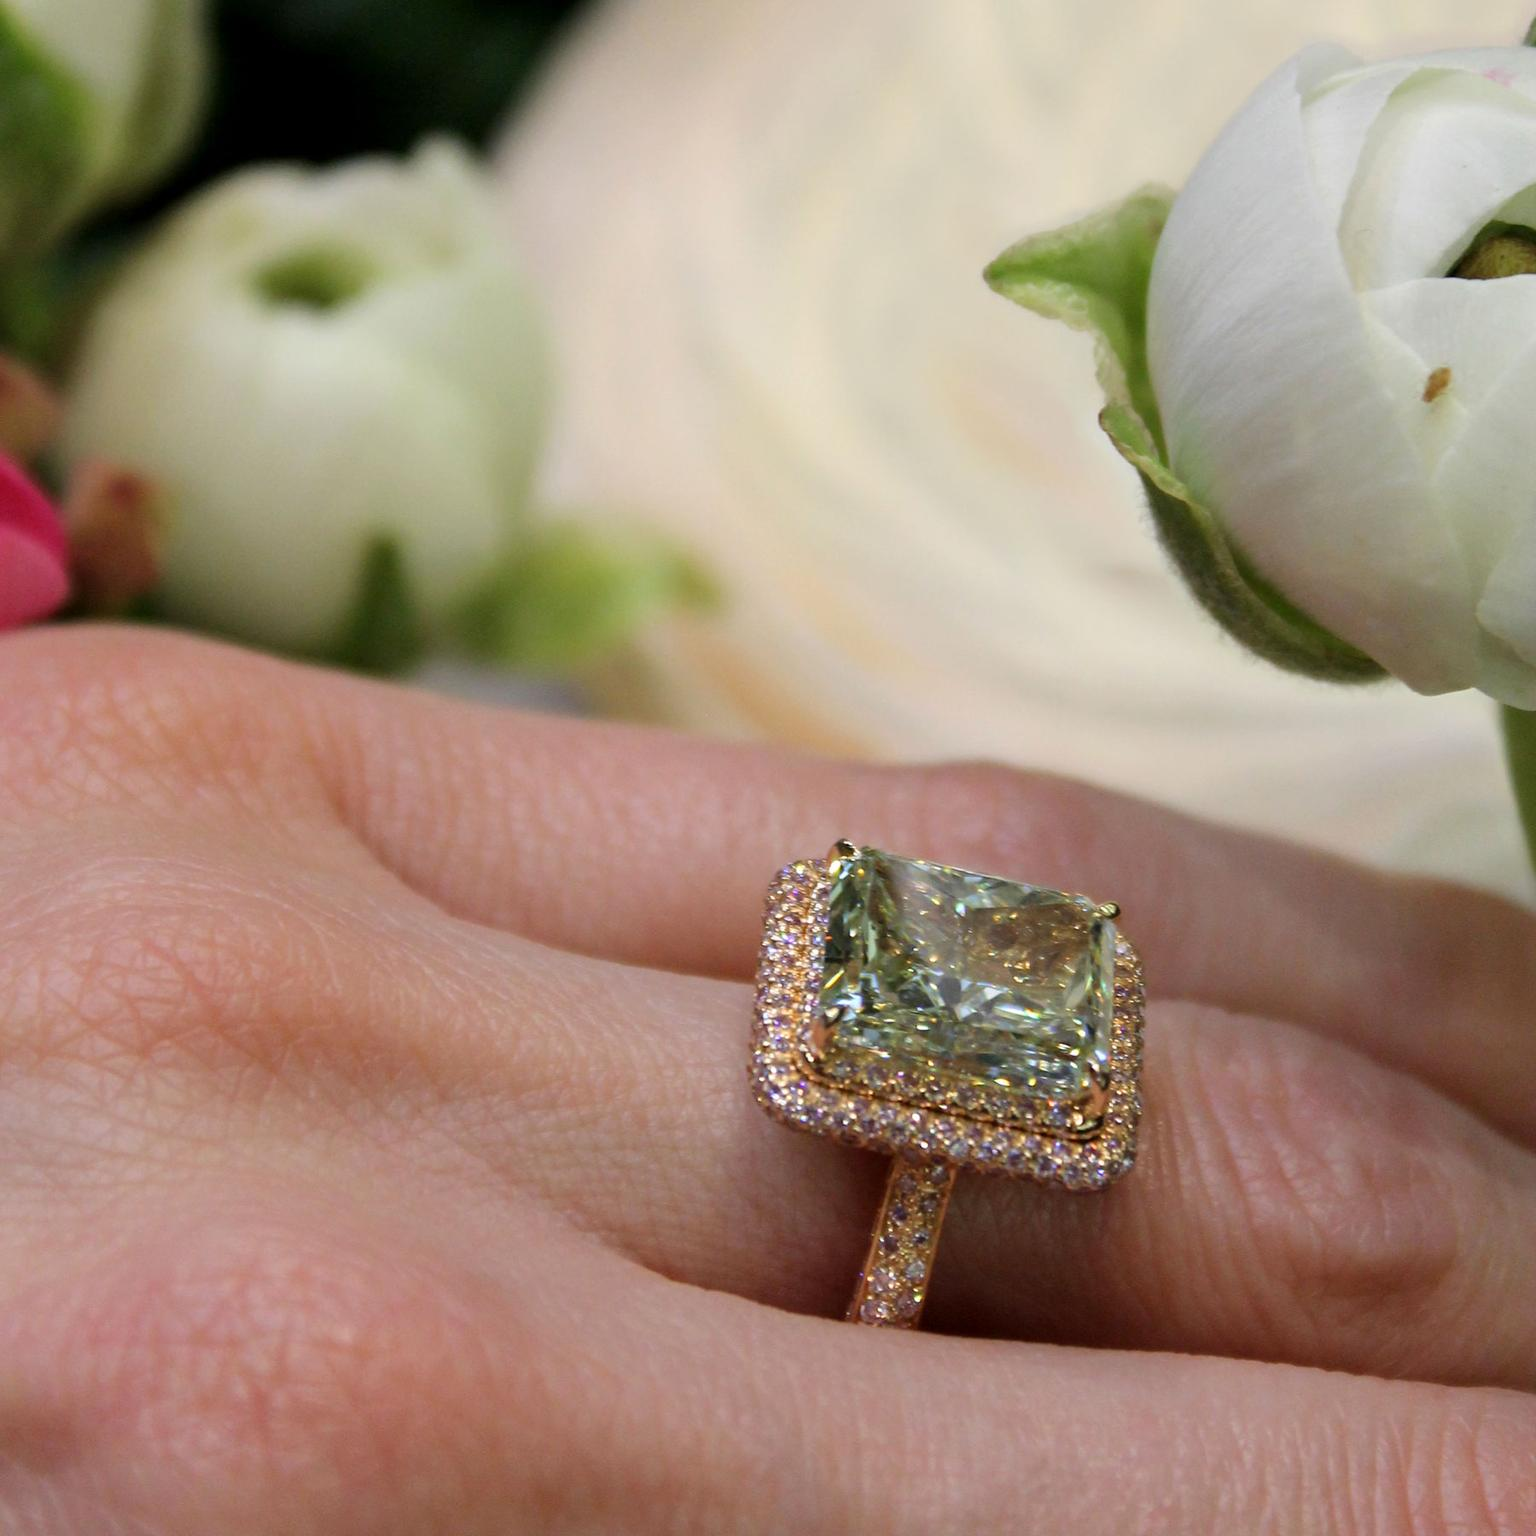 Moussaieff 6.51-carat Yellowish Green diamond ring